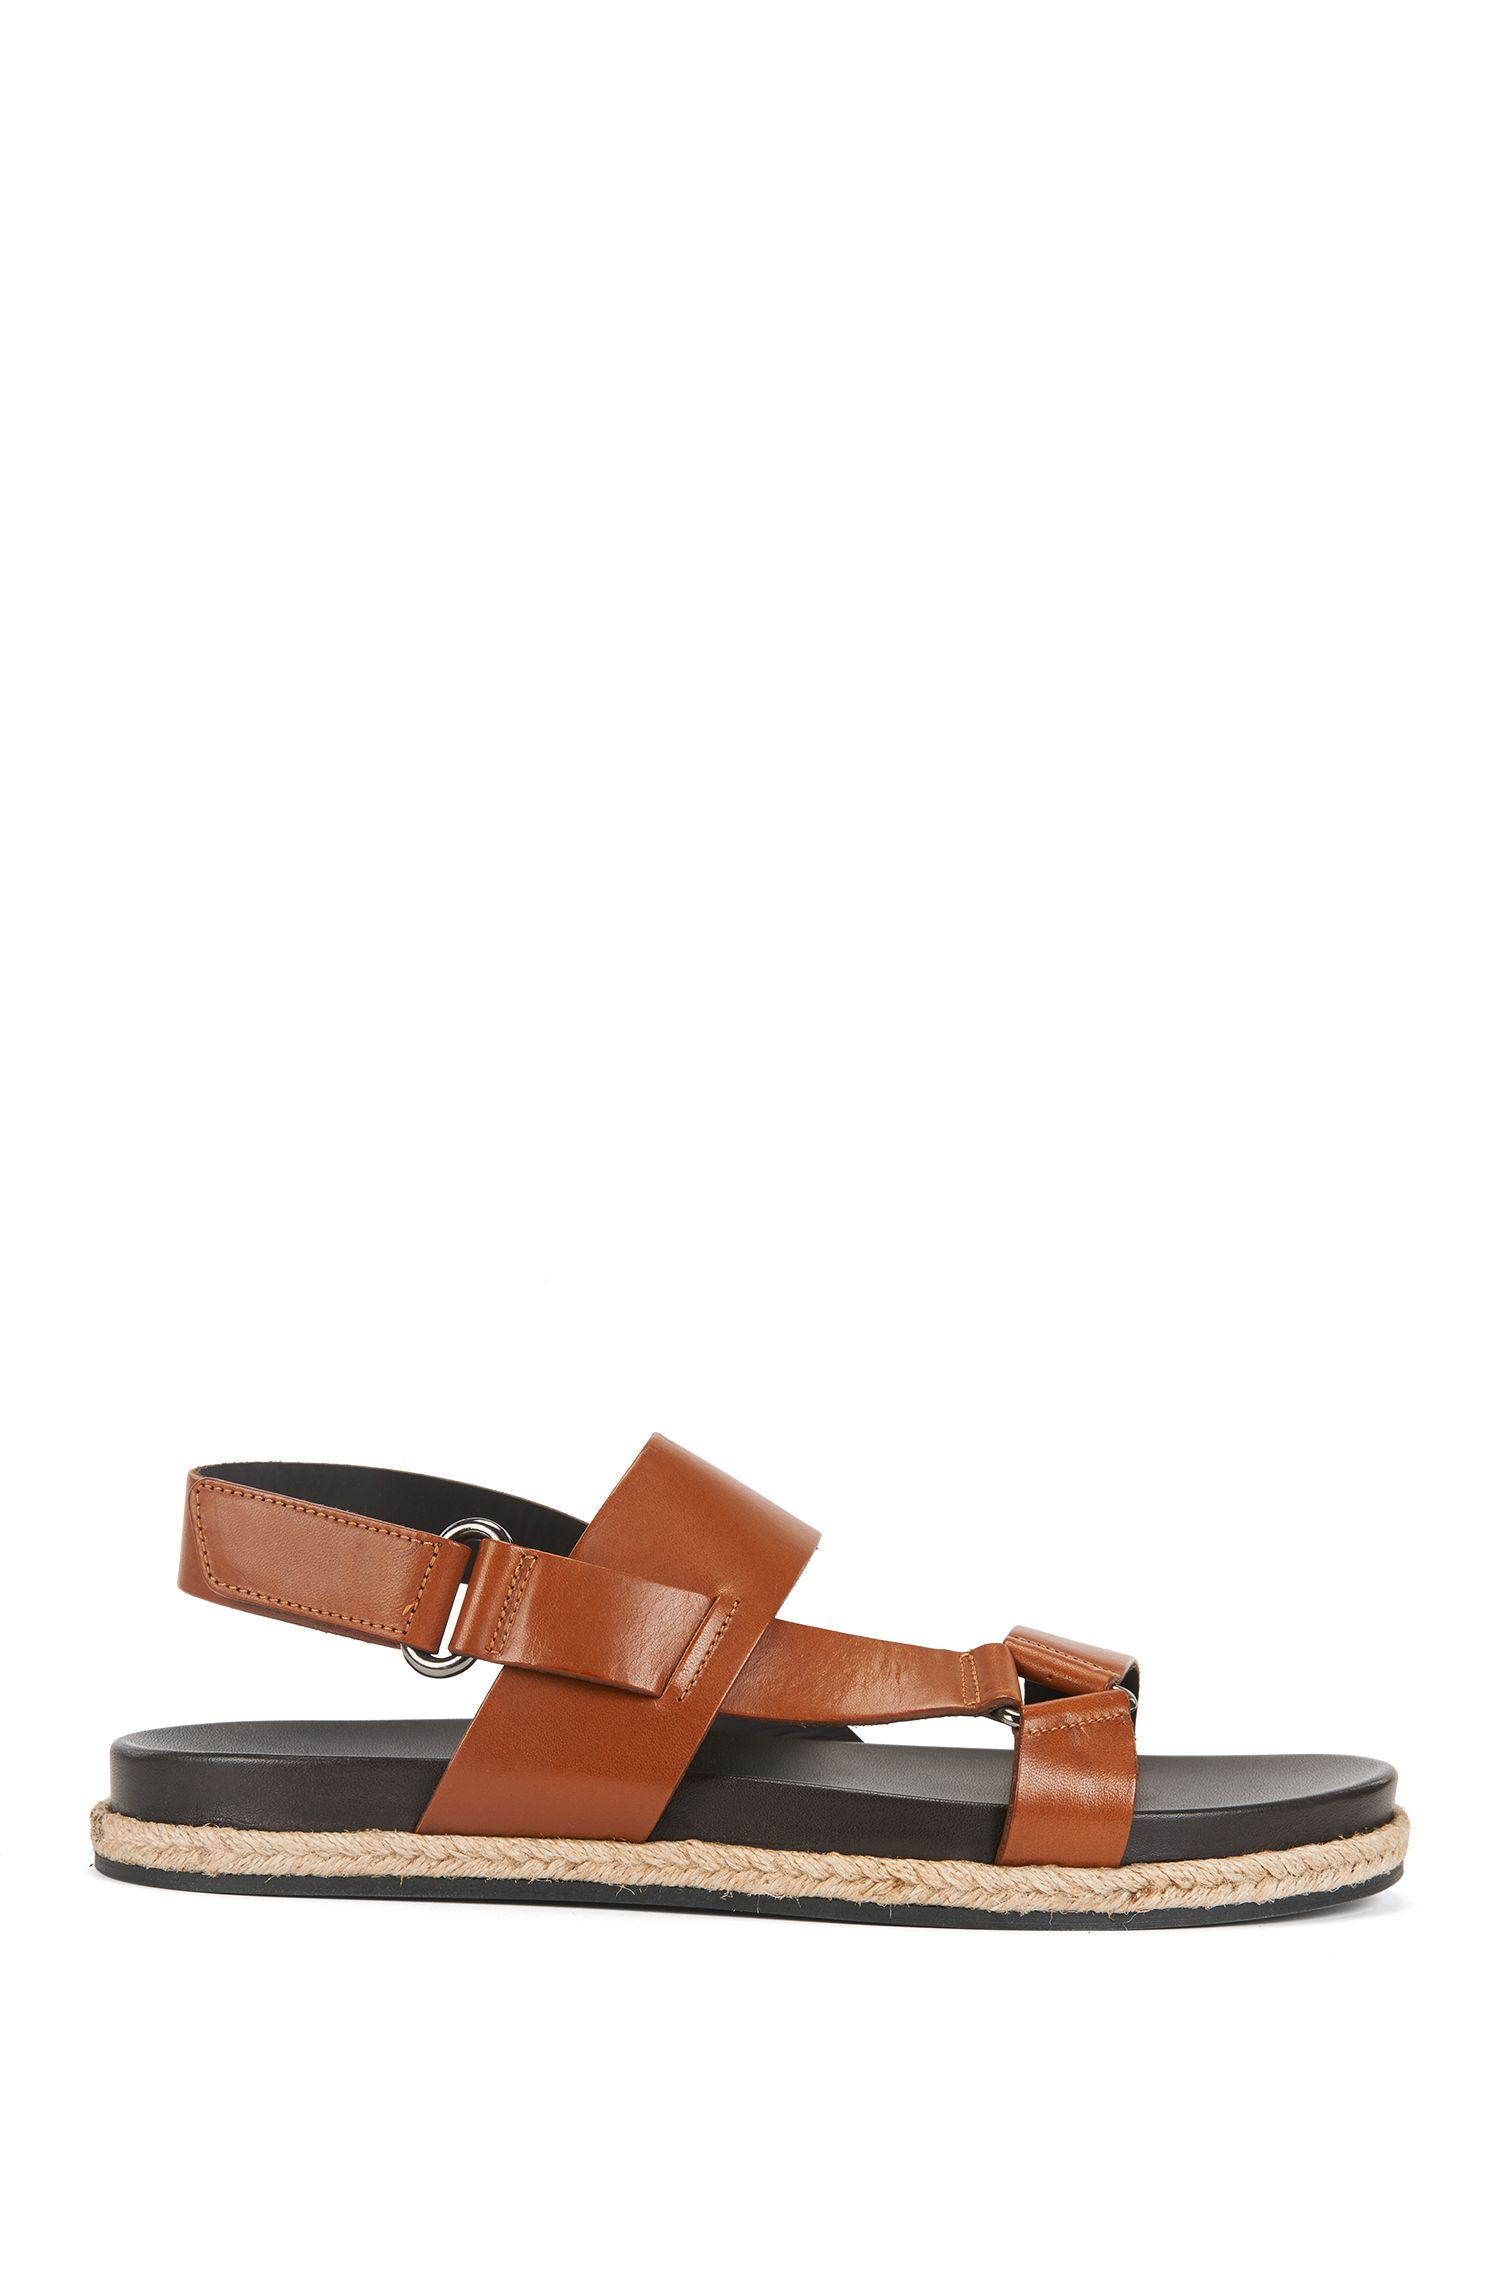 Calf-leather sandals with rope welt detail